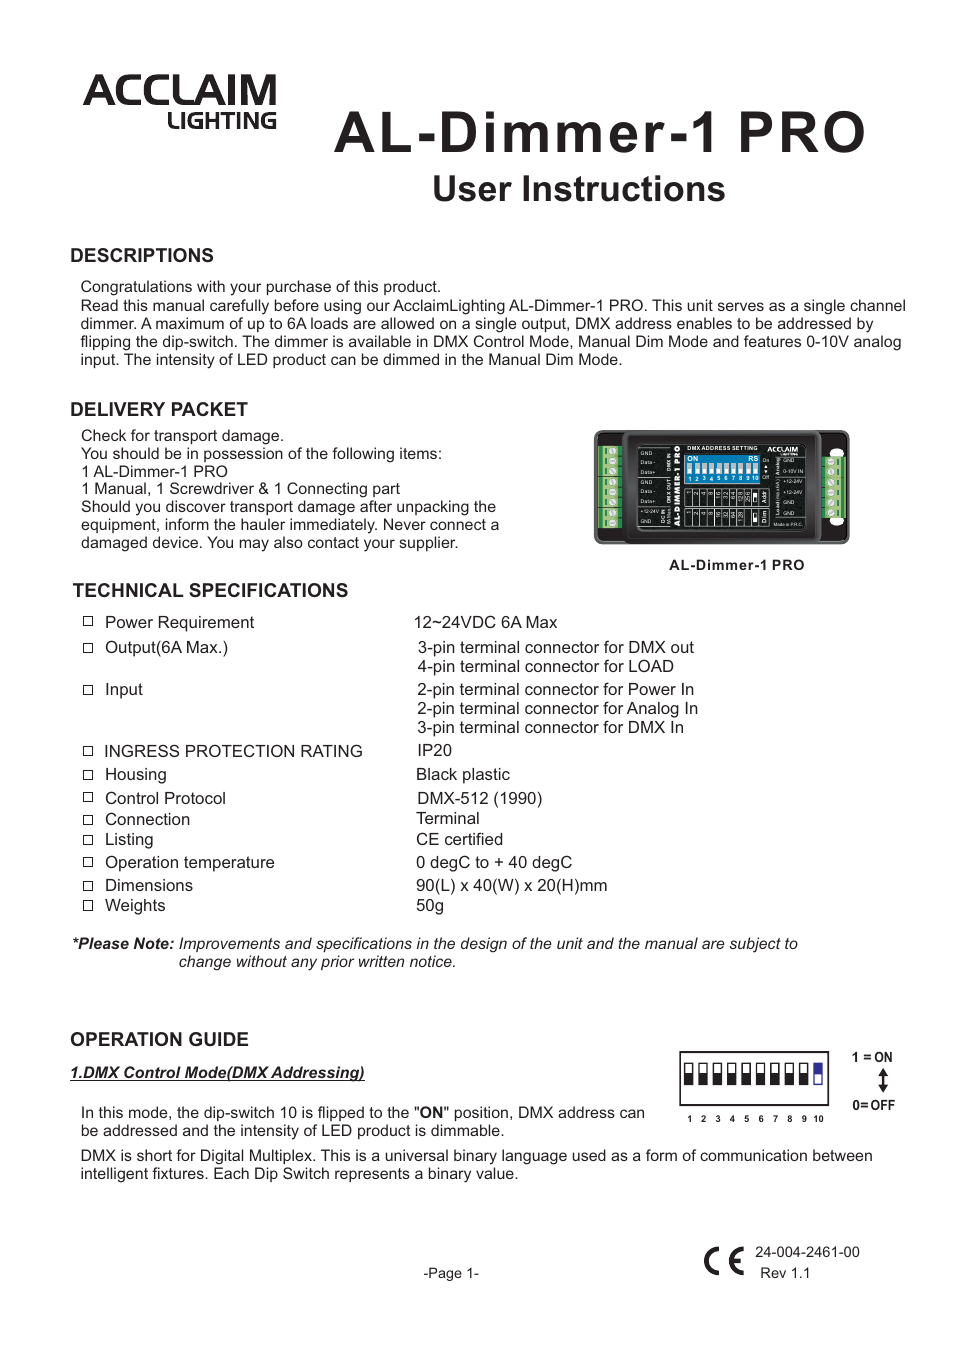 Acclaim Lighting AL Dimmer 1 Pro User Manual | 3 pages